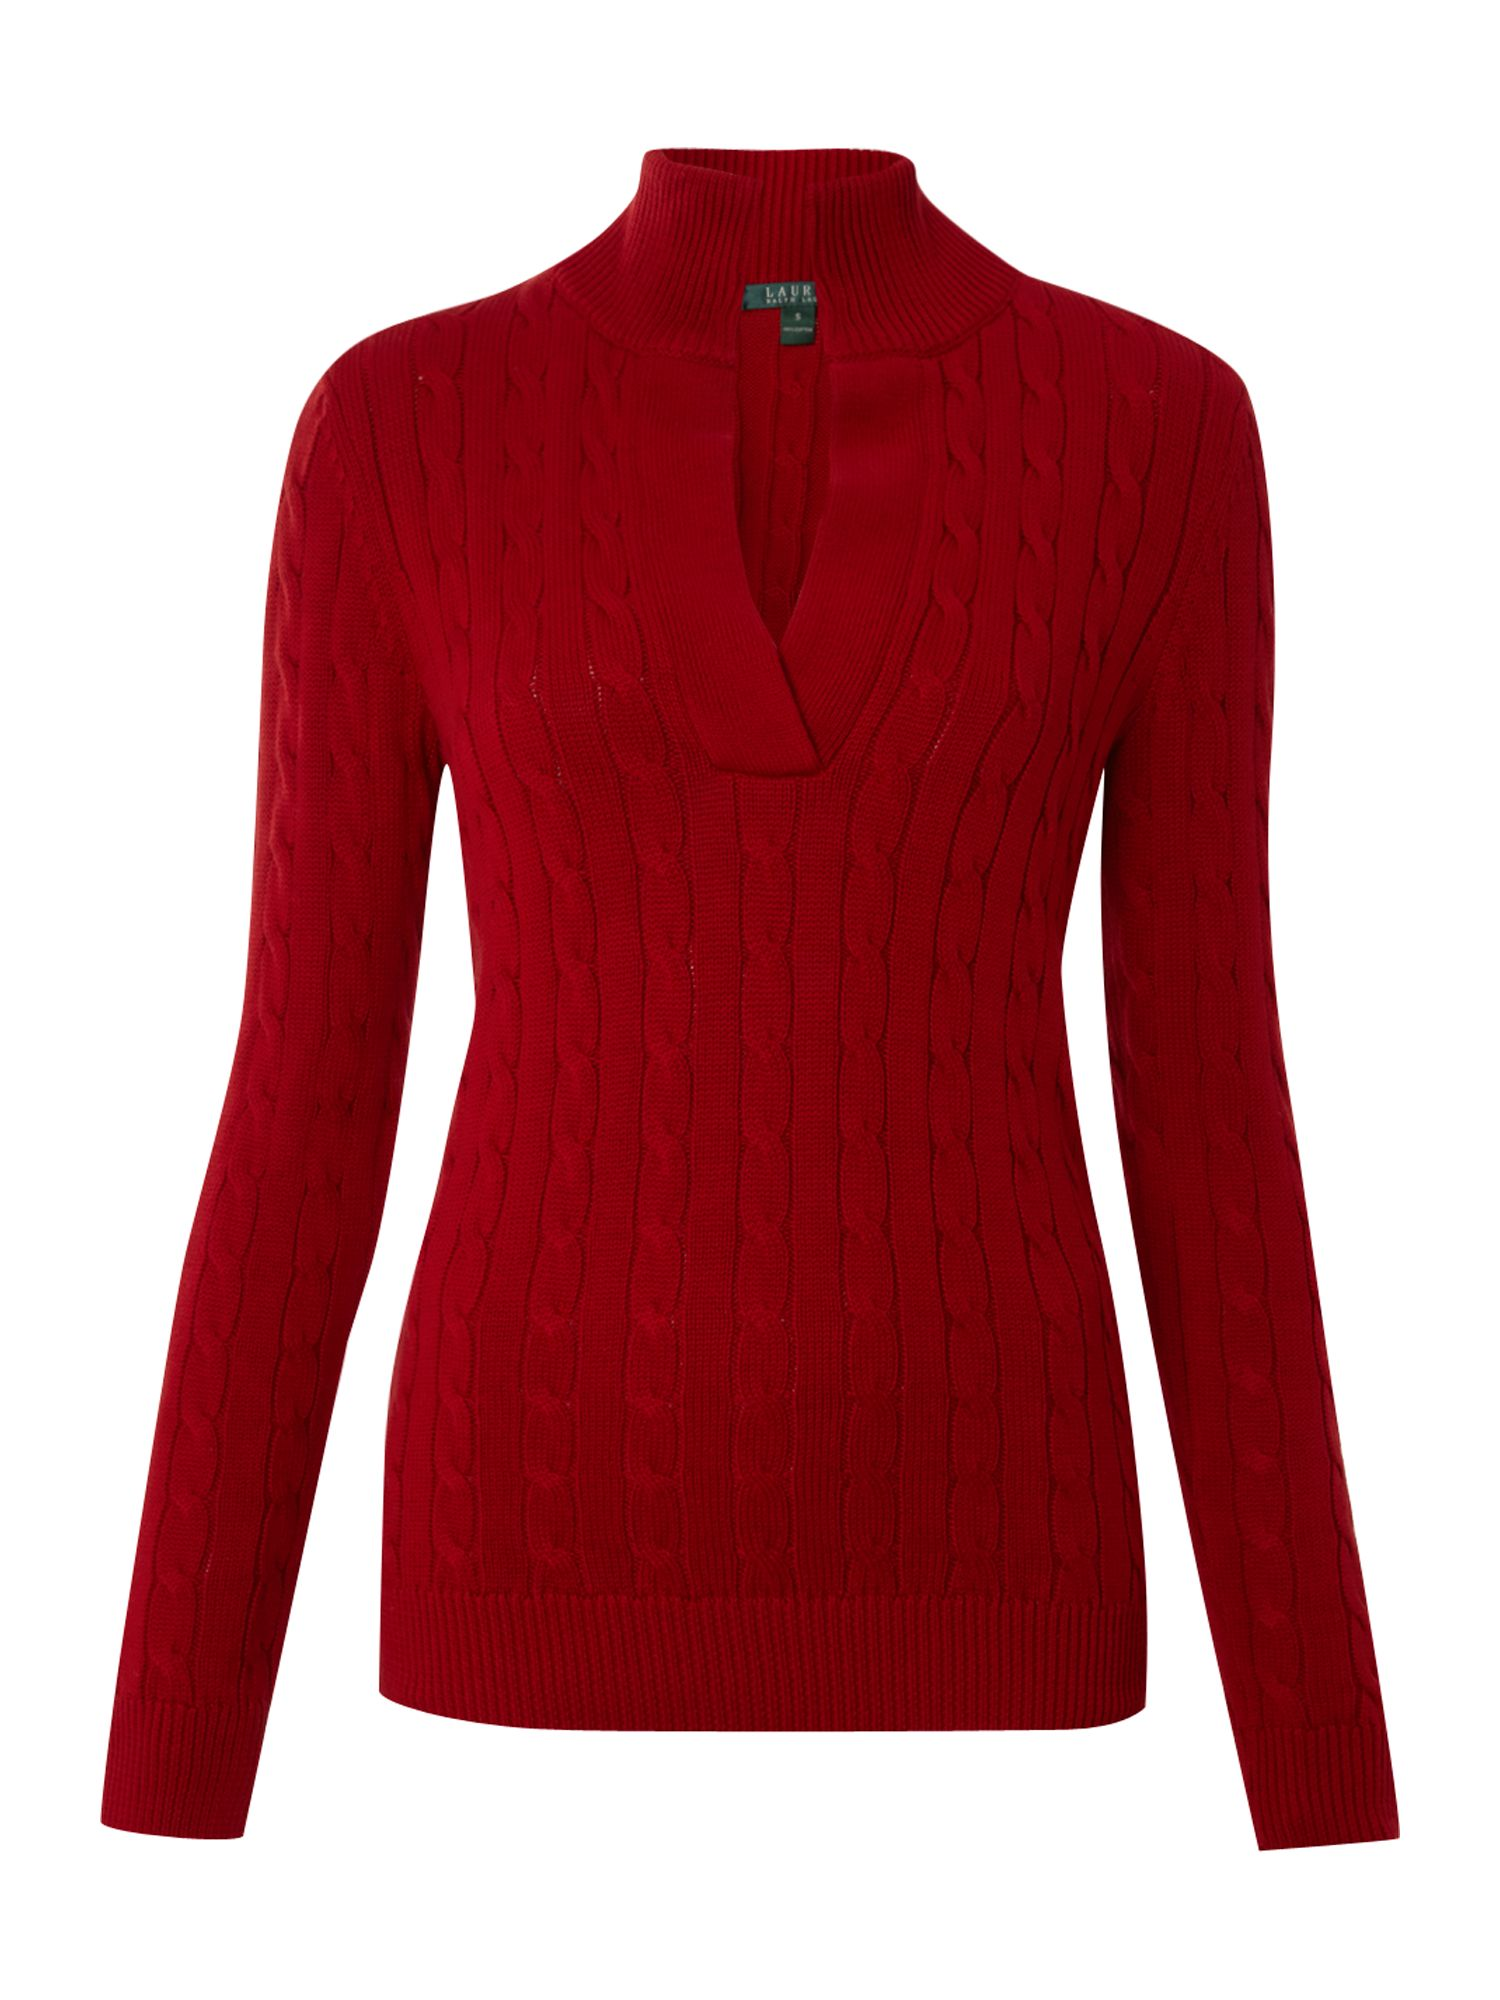 lauren by ralph lauren long sleeve vneck cable knit jumper with collar in red lyst. Black Bedroom Furniture Sets. Home Design Ideas